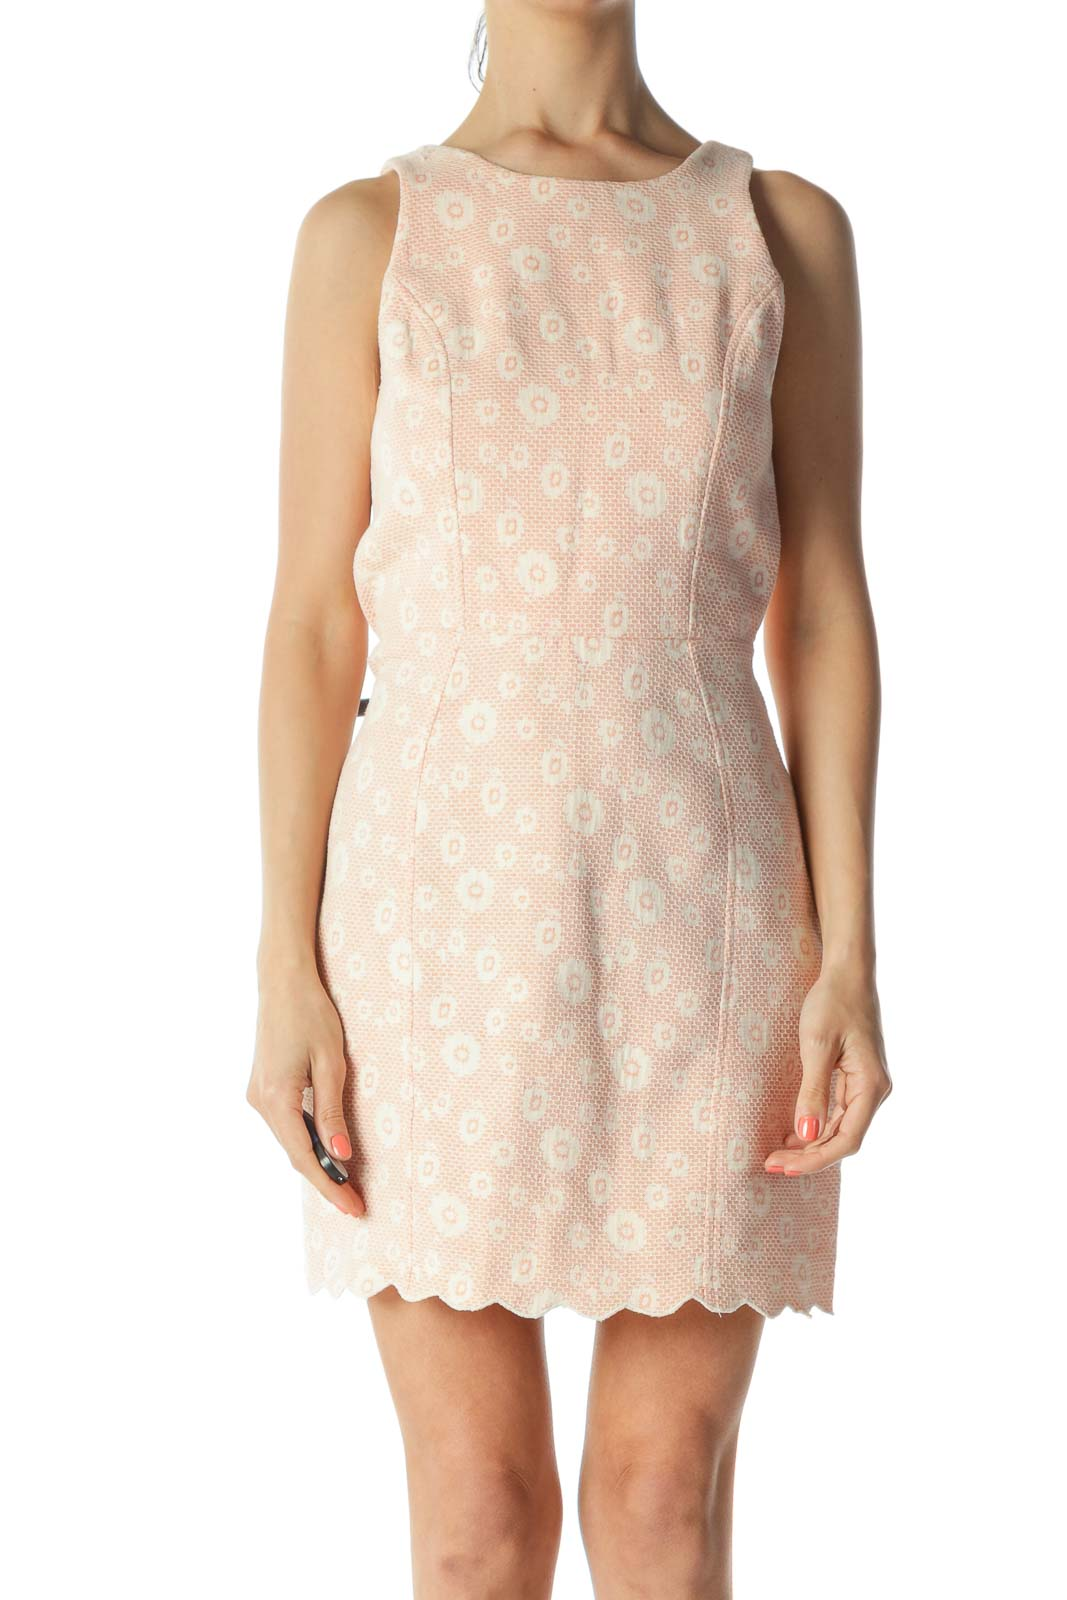 Orange/Cream Floral-Knit-Body Back-Cut-Out and Snap-Buttons Dress Front